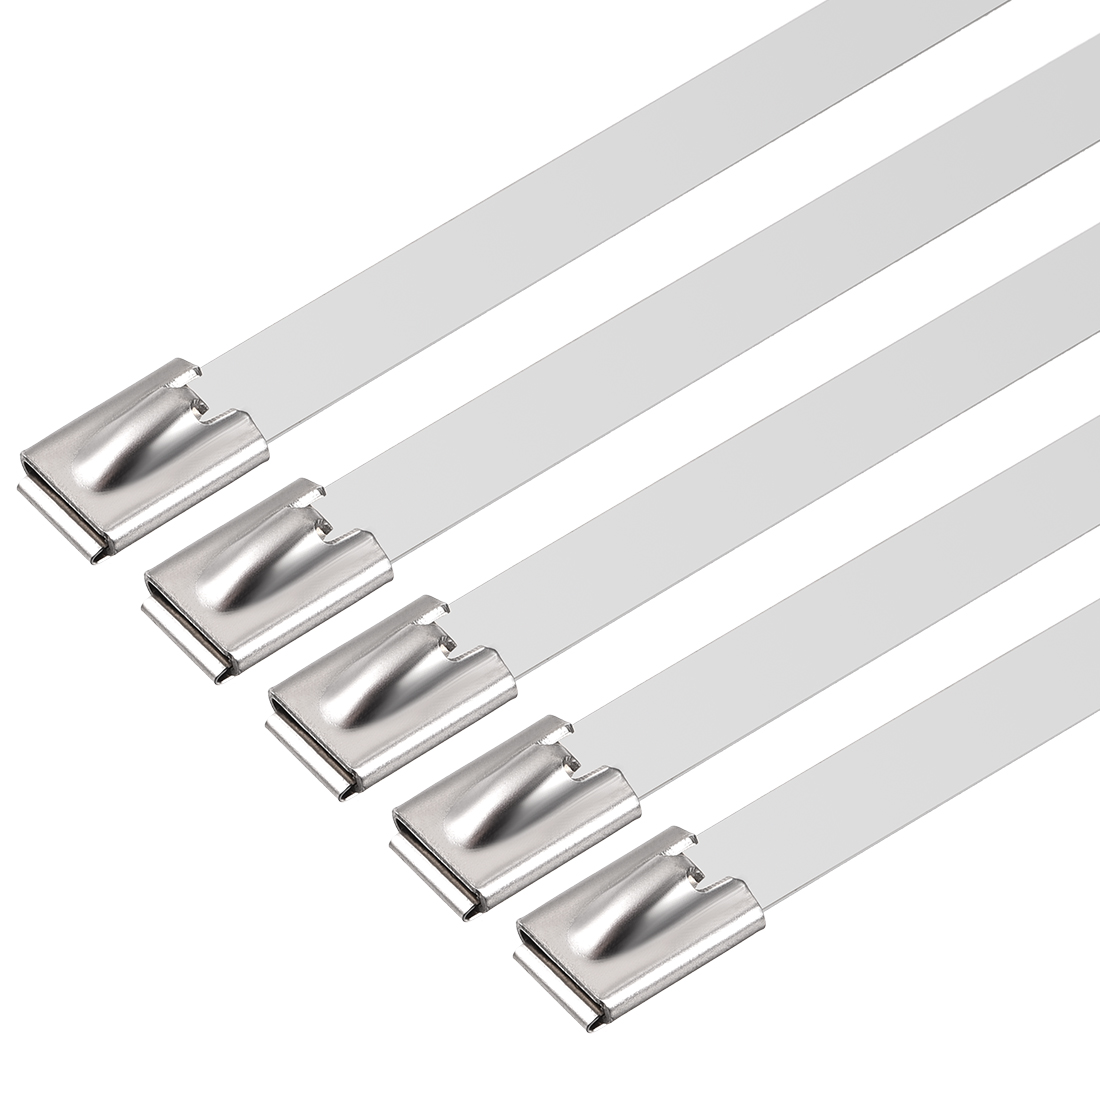 8 Inch Stainless Steel Cable Zip Ties 0.4 Inch Width Metal Exhaust Wrap 20pcs